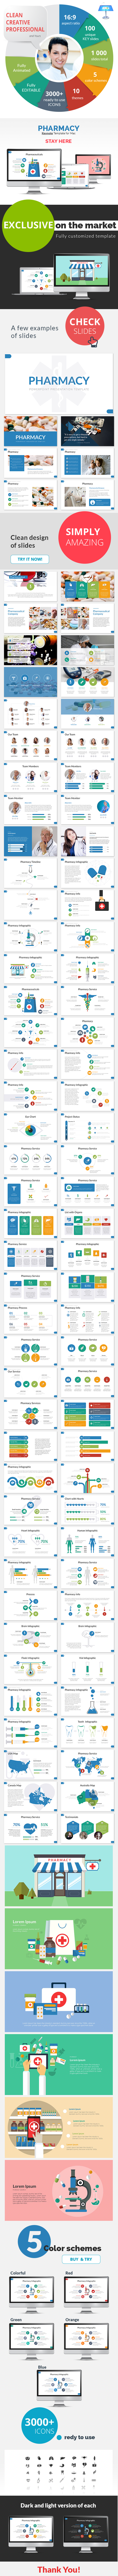 Pharmacy Keynote Presentation Template - Keynote Templates Presentation Templates